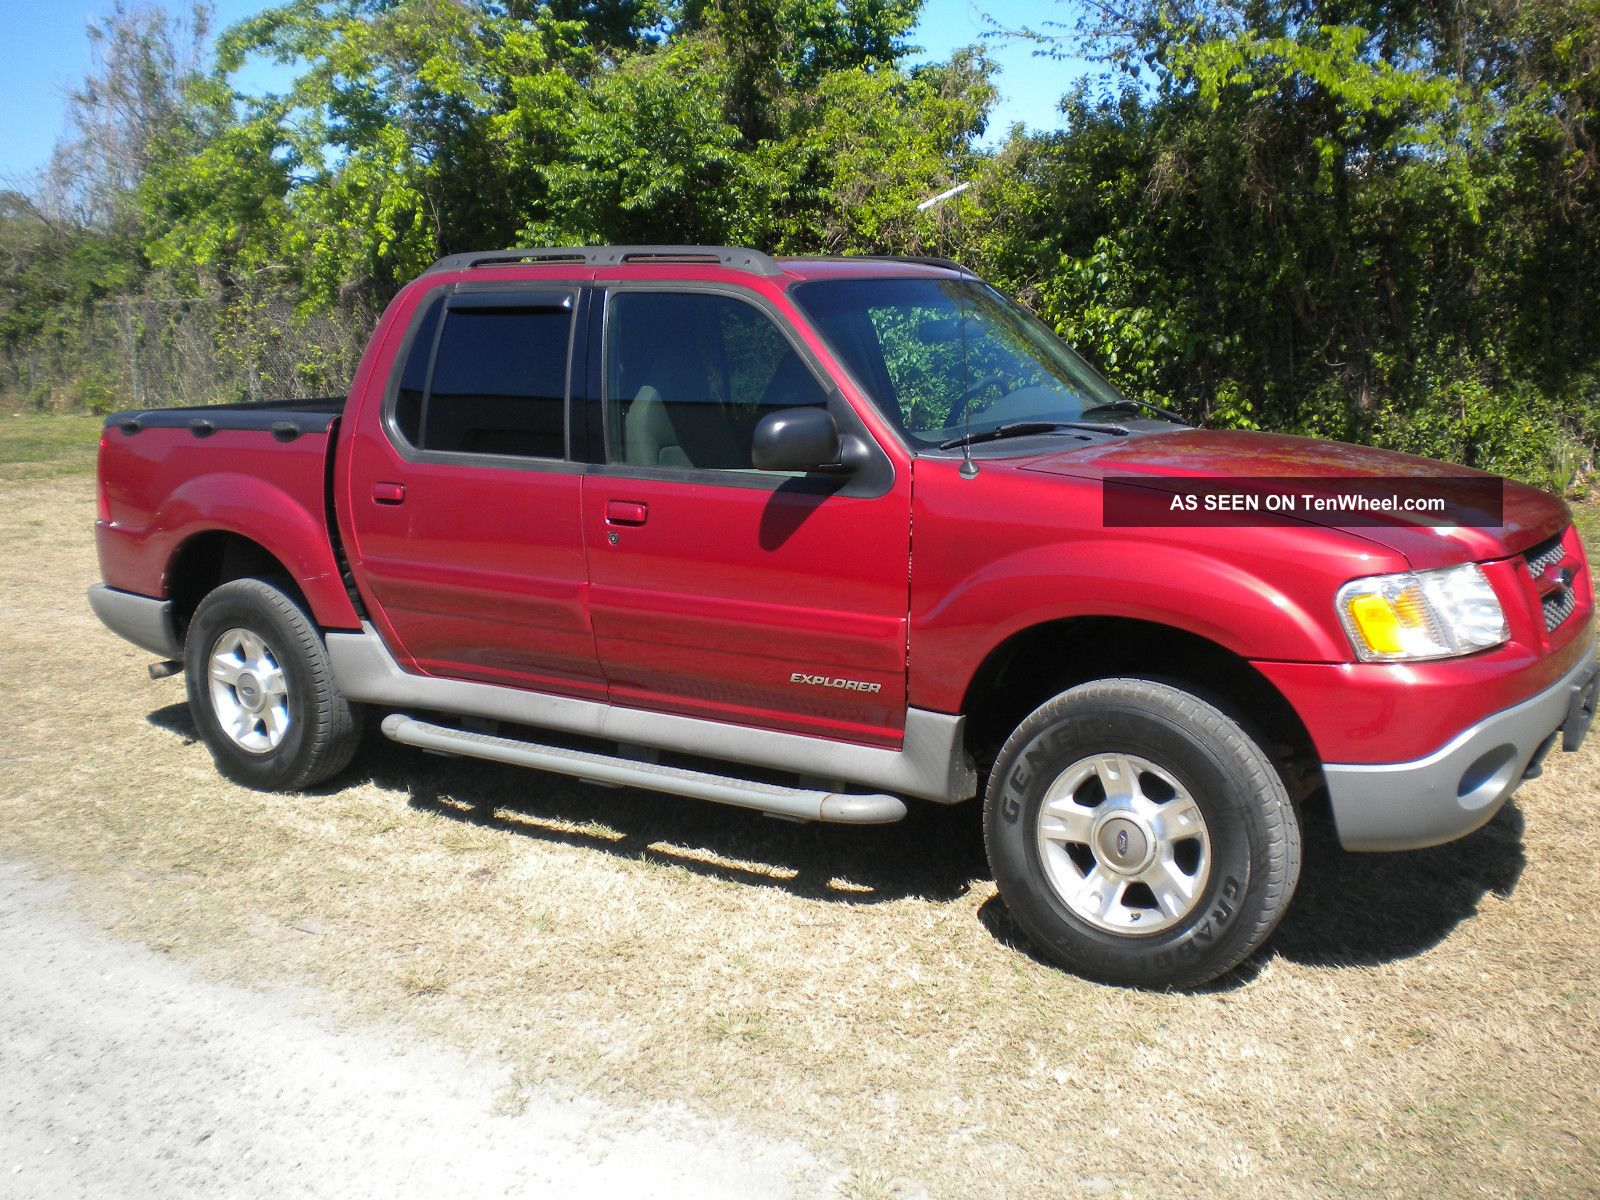 2001 ford explorer sport trac 4x4 4wd explorer sport trac photo. Cars Review. Best American Auto & Cars Review